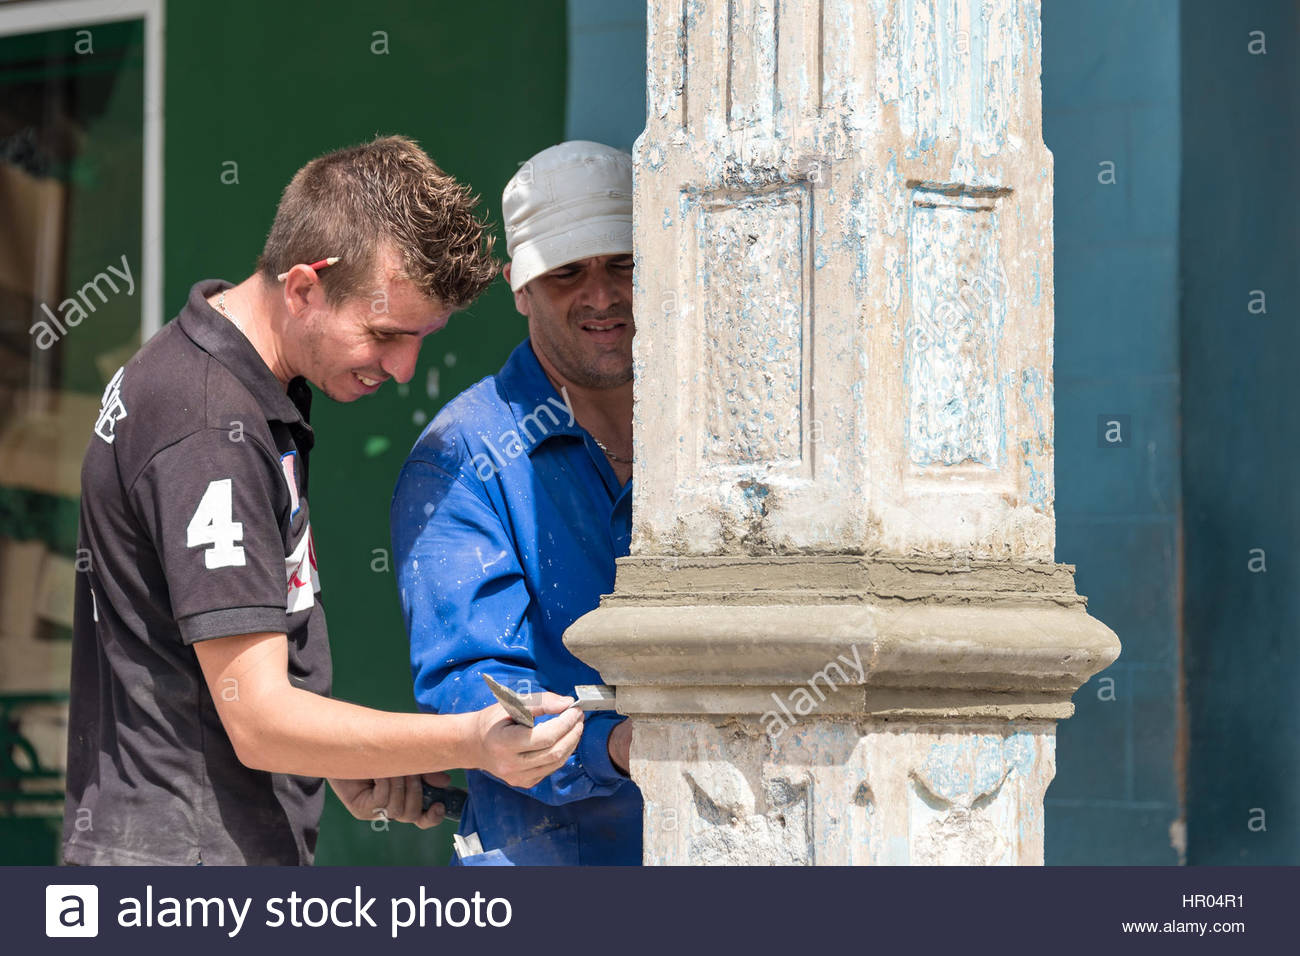 Cuban real people lifestyle: men working restoring old colonial column in the Calixto Garcia plaza surrounding buildings. - Stock Image